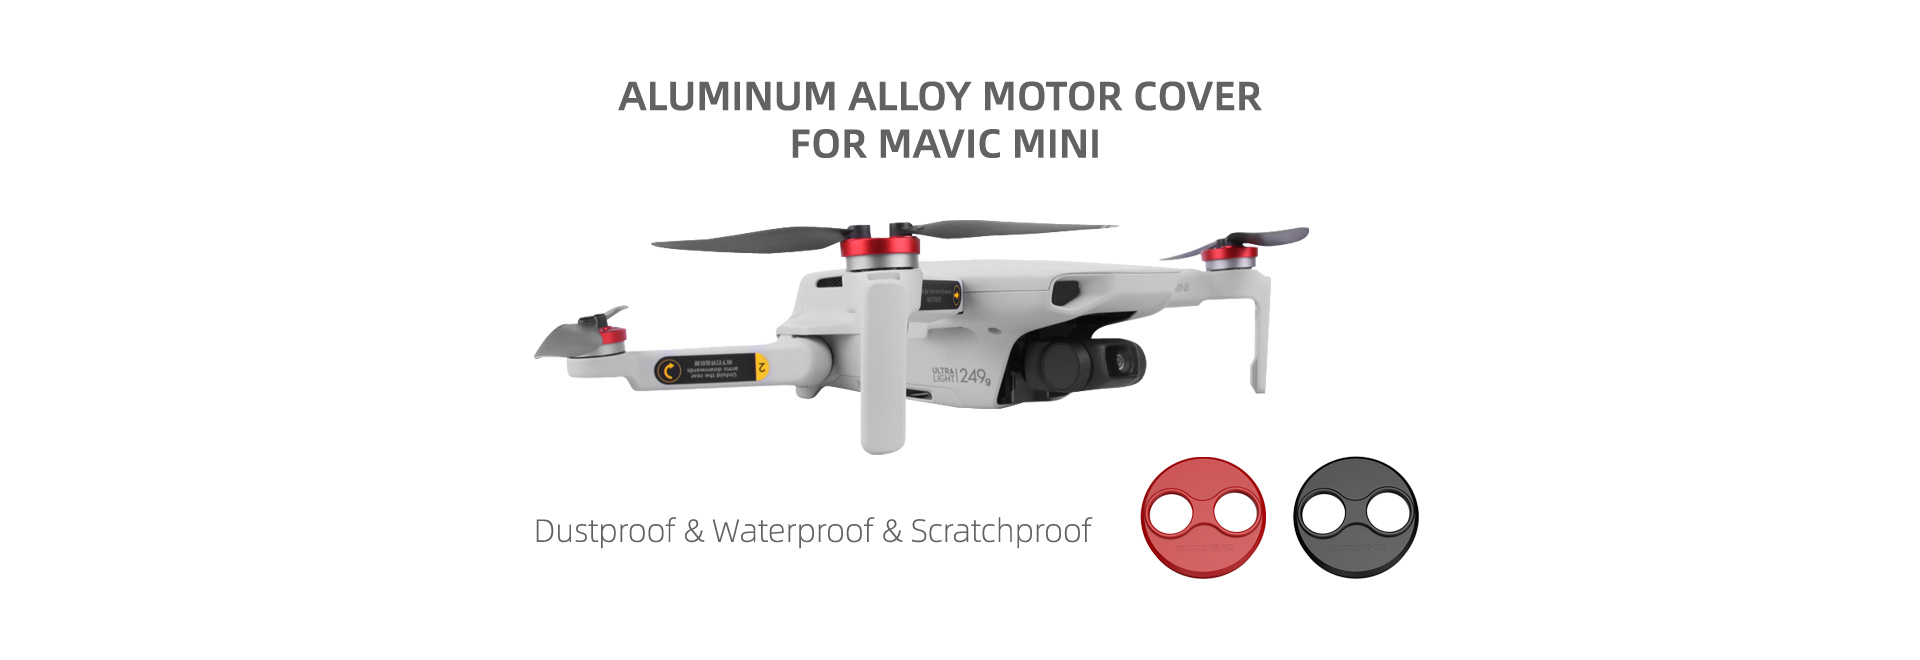 Motor Covers for Mavic Mini